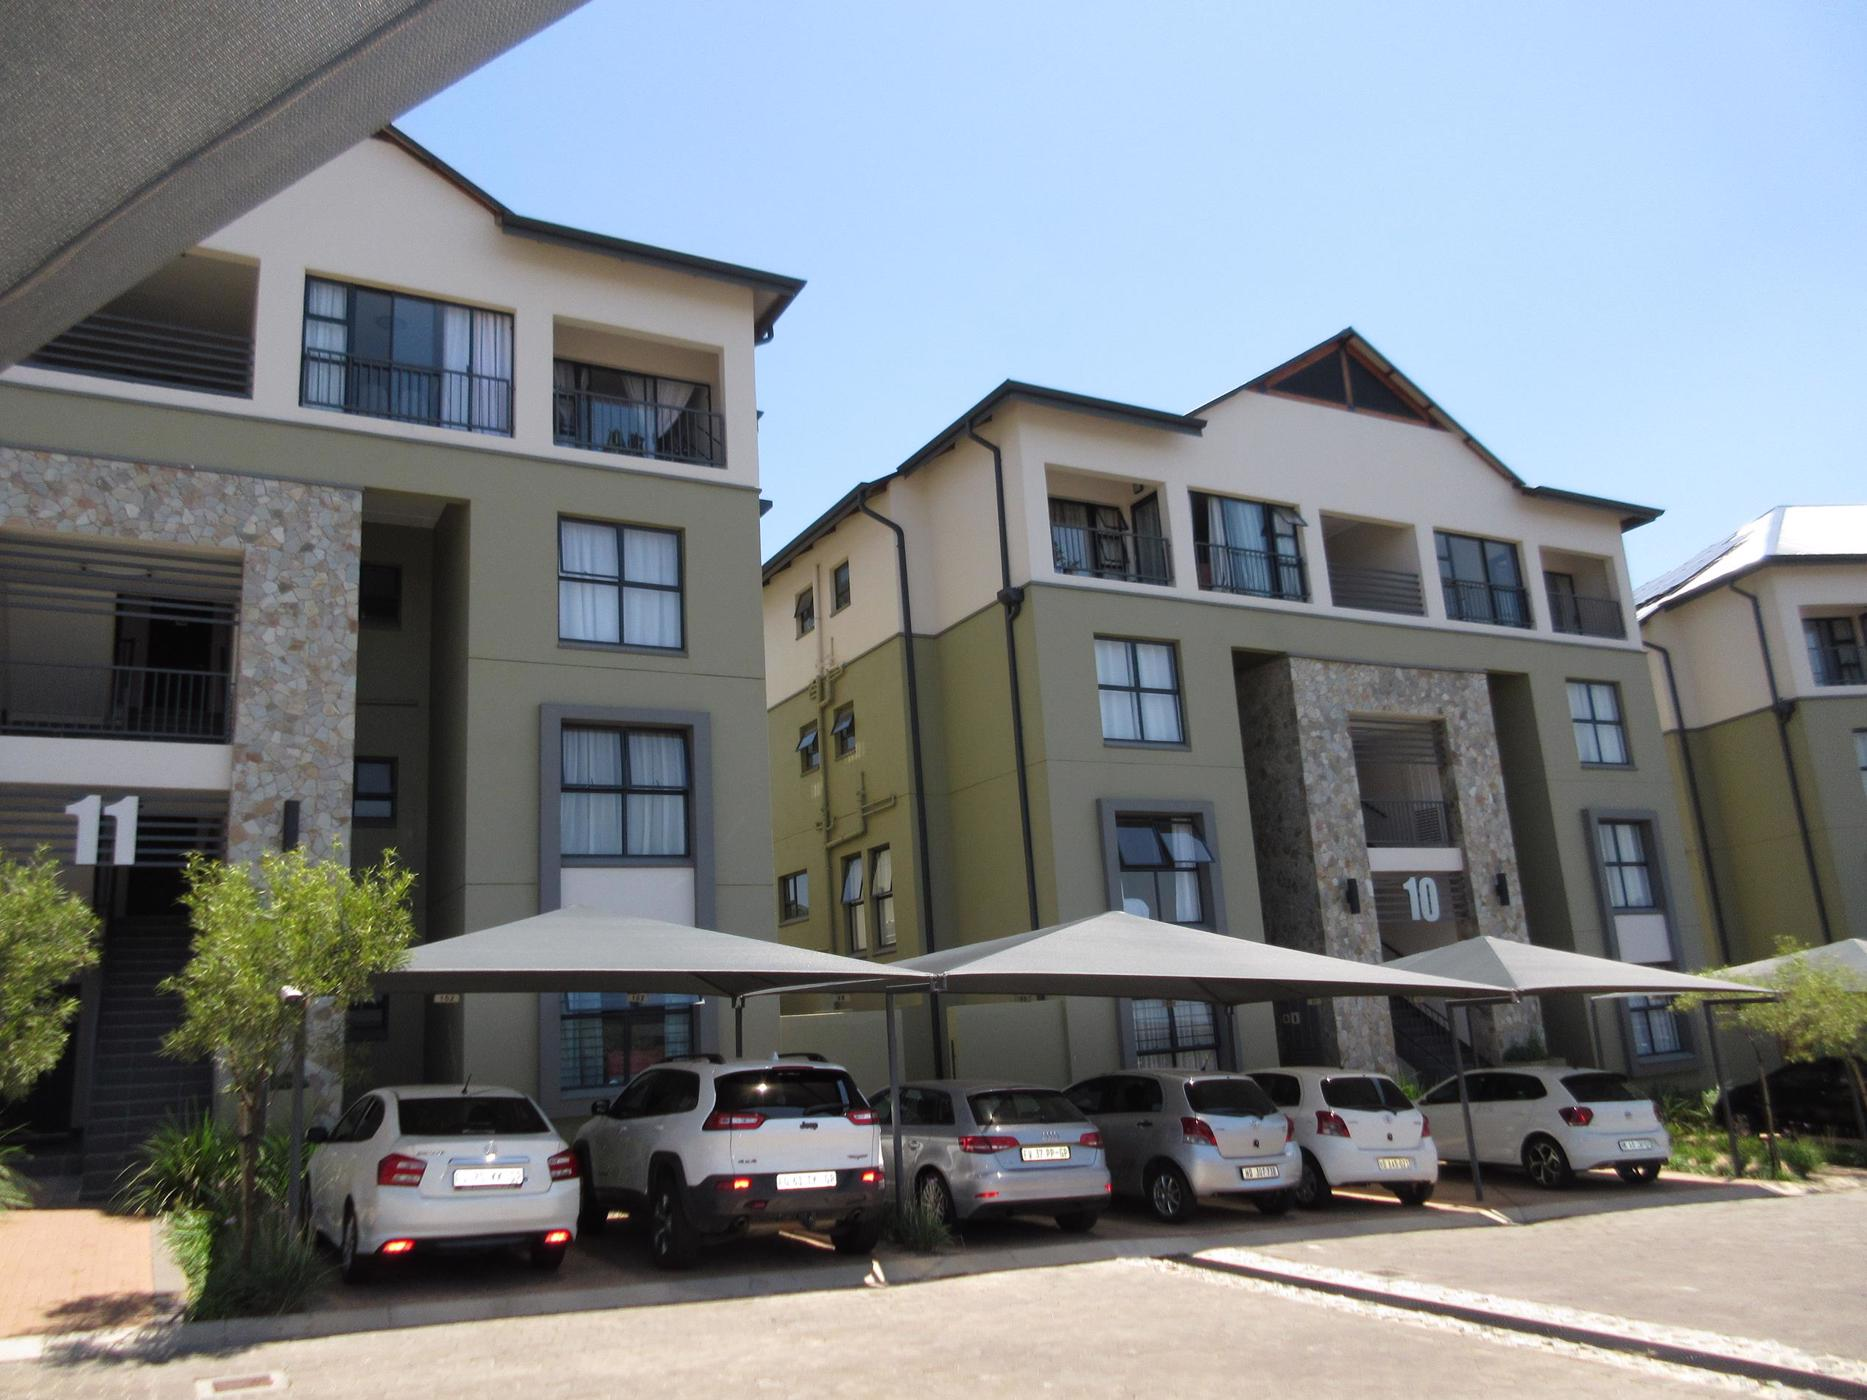 1 Bedroom Apartment For Sale | Waterfall (Midrand ...